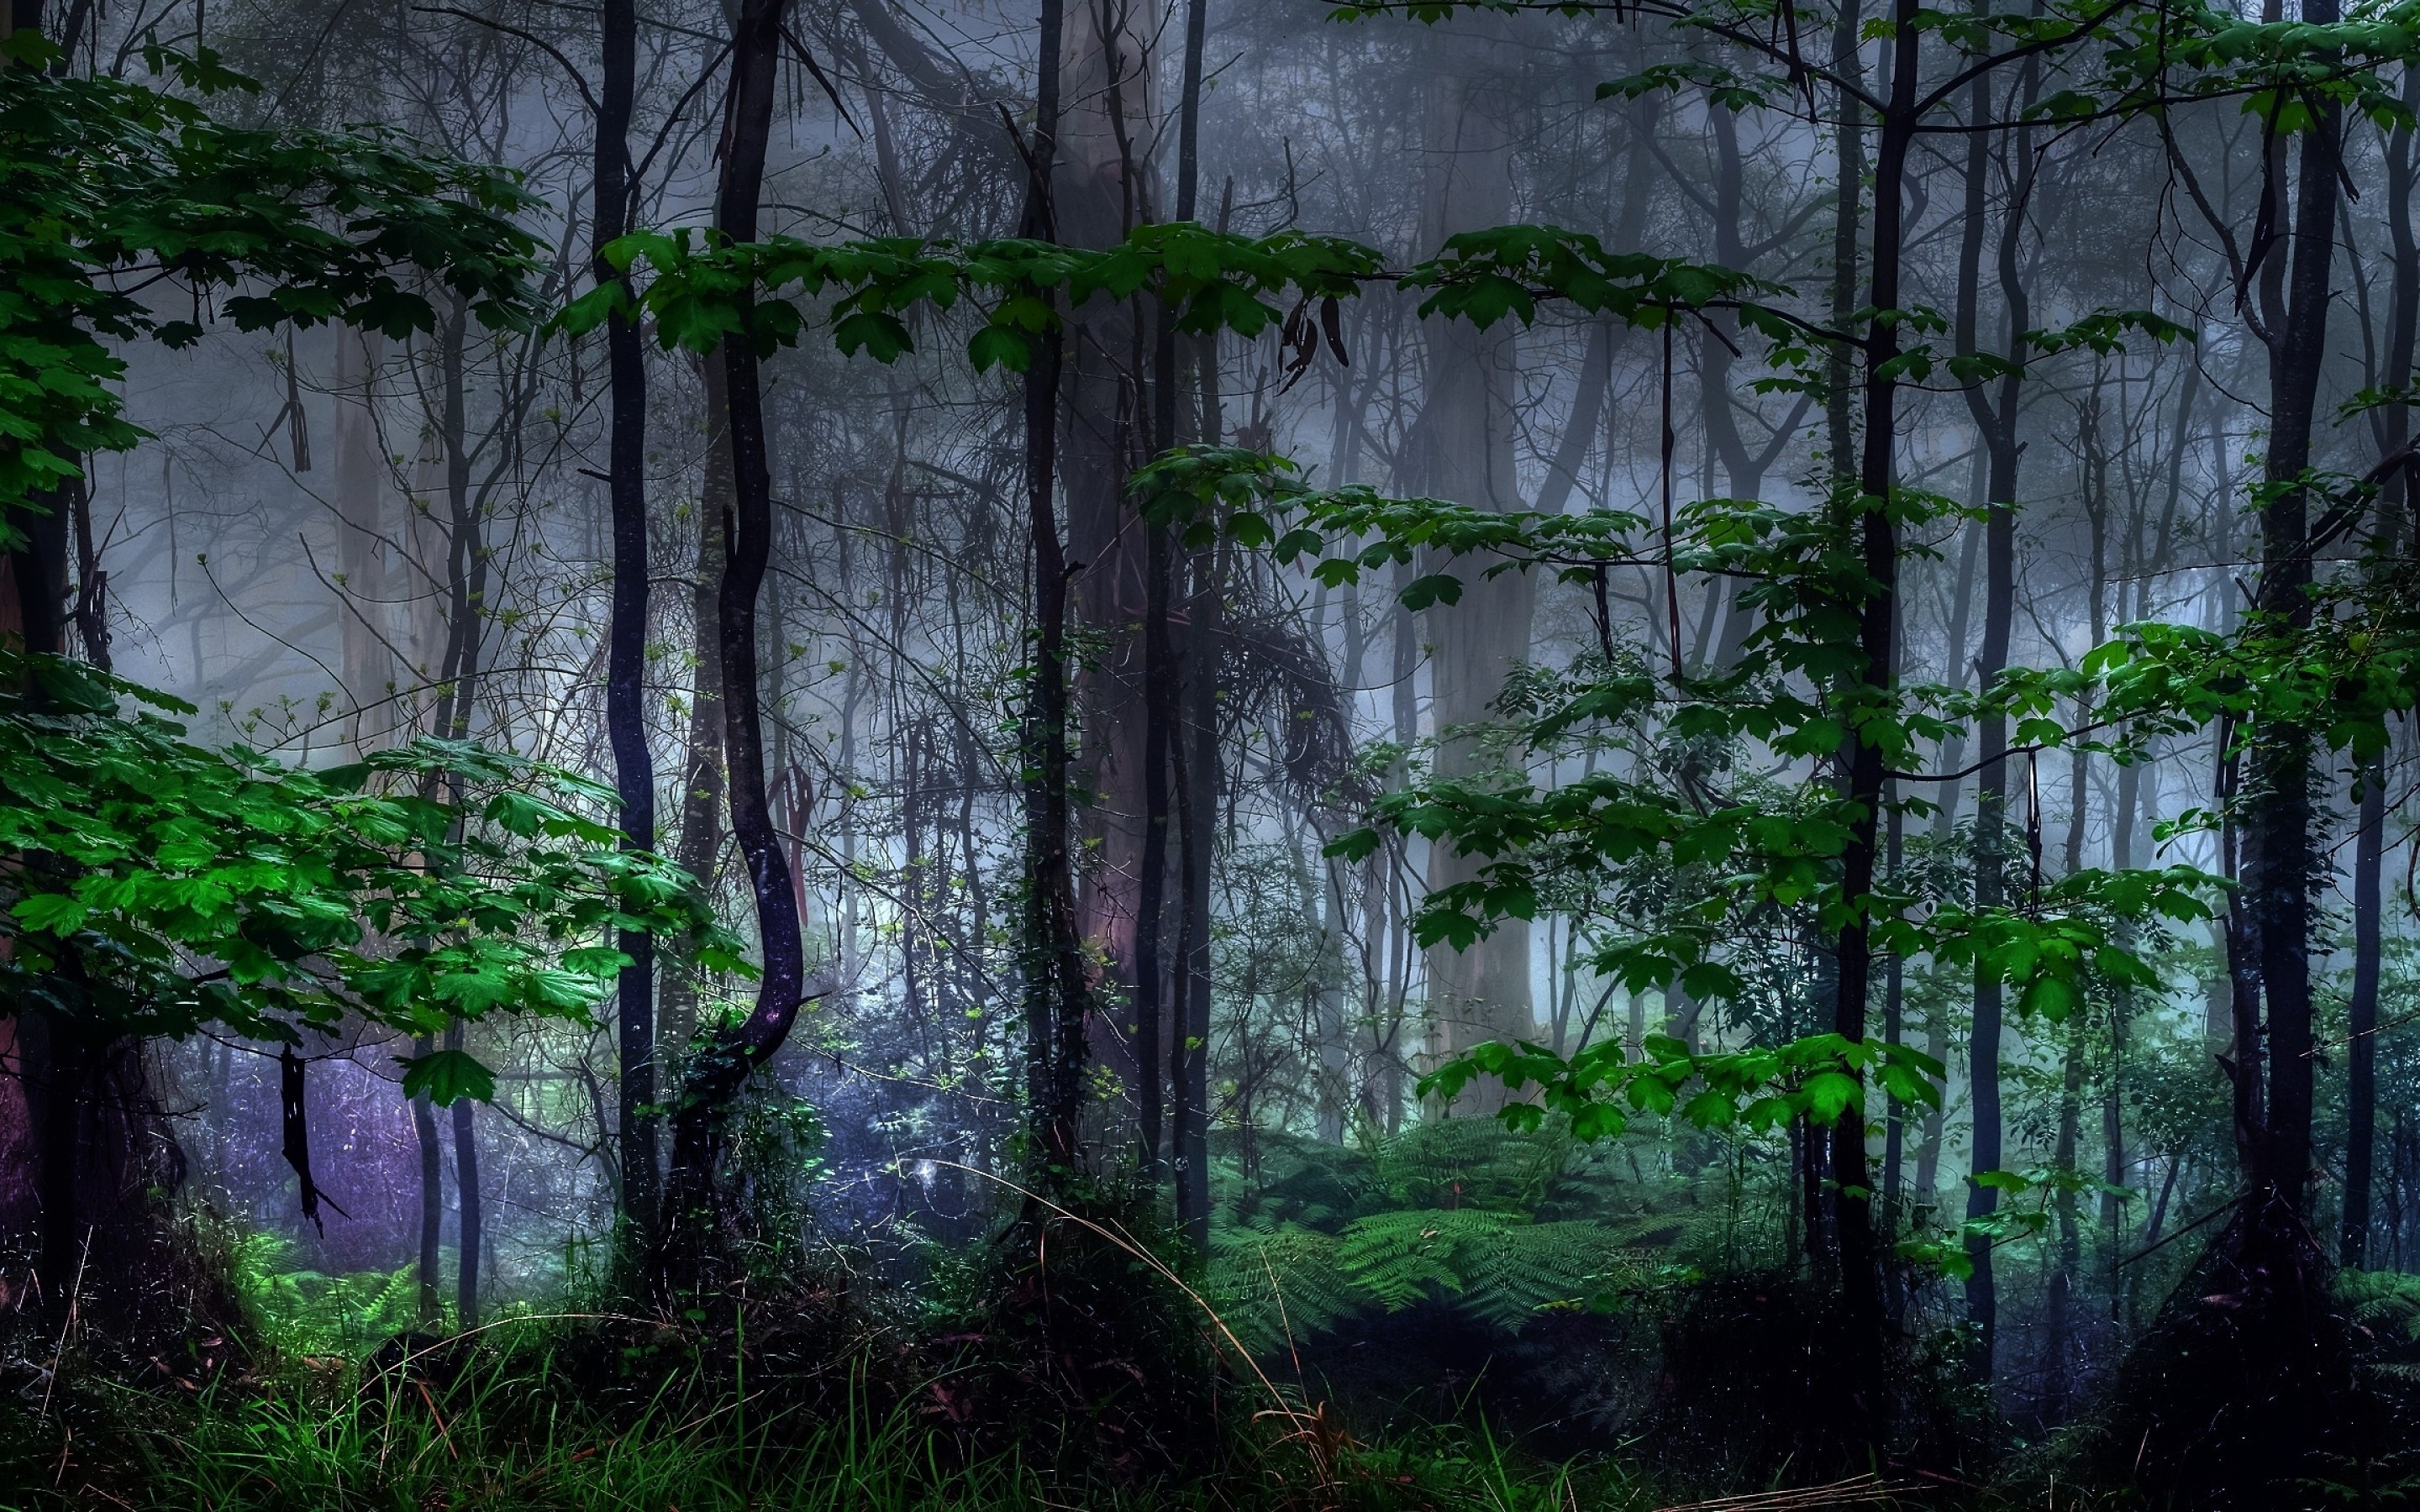 Download 2880x1800 Forest, Dark, Trees, Foliage, Mist Wallpapers for ...